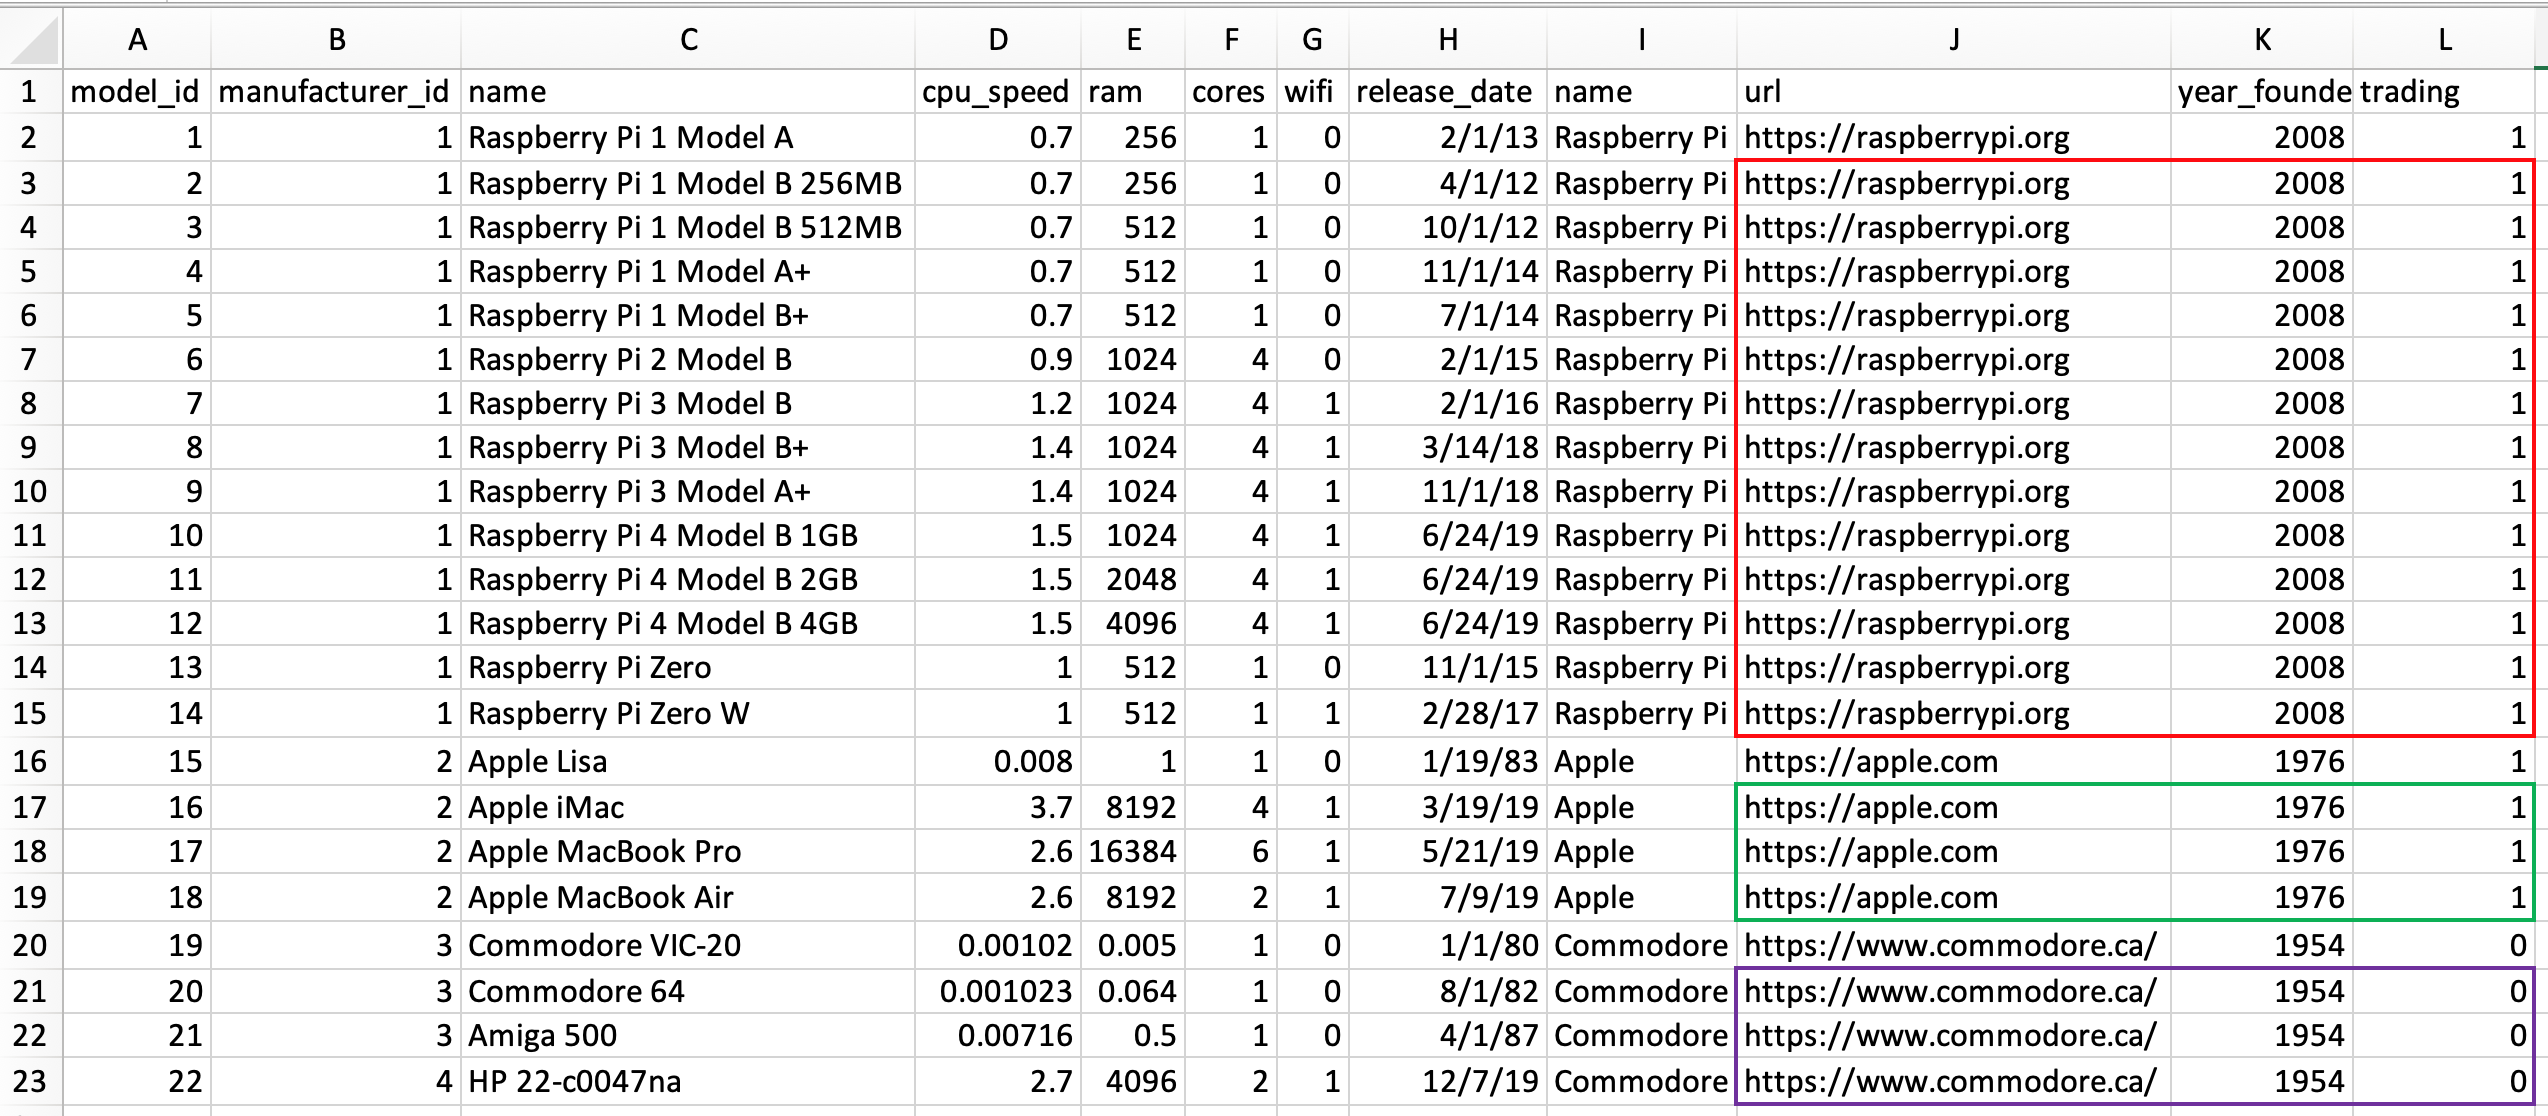 An image of the computer sales records in one table with repeating data highlighted